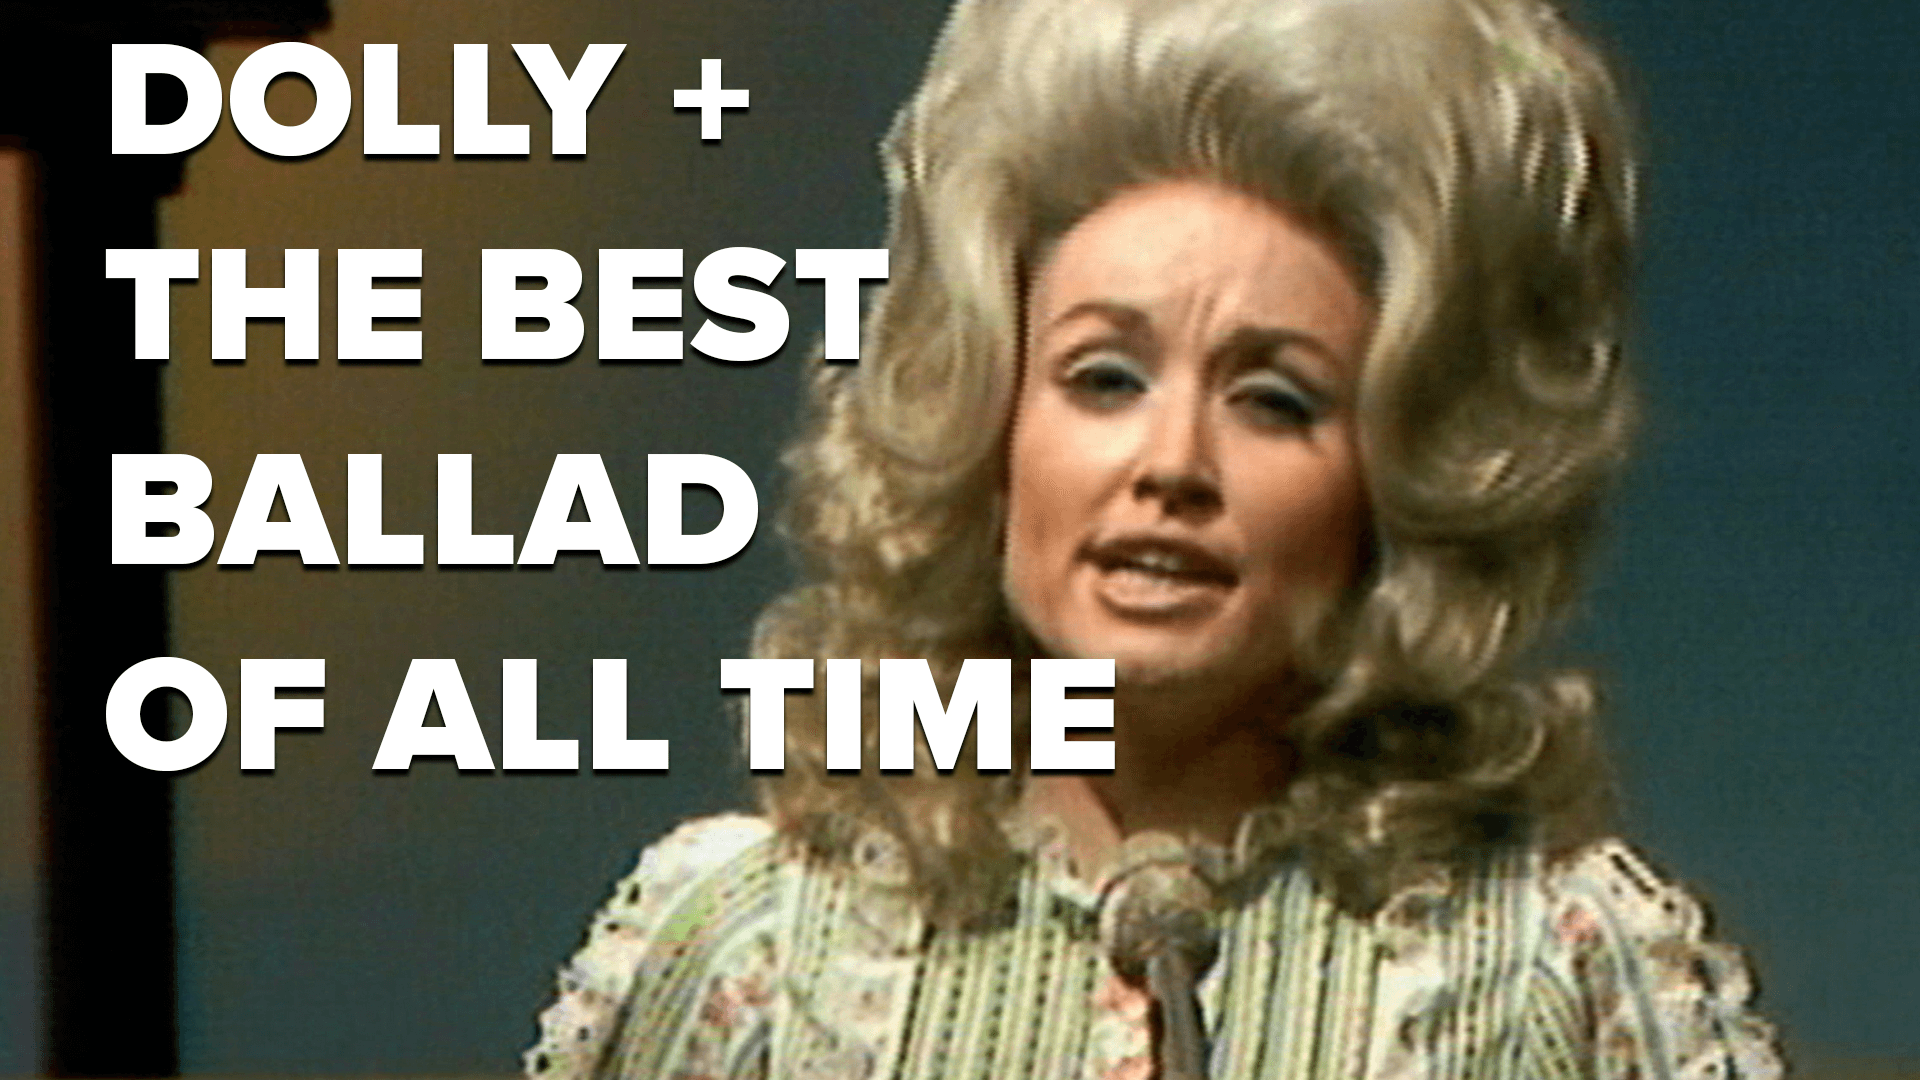 Dolly + The Best Ballad of All Time | This Week in Music History